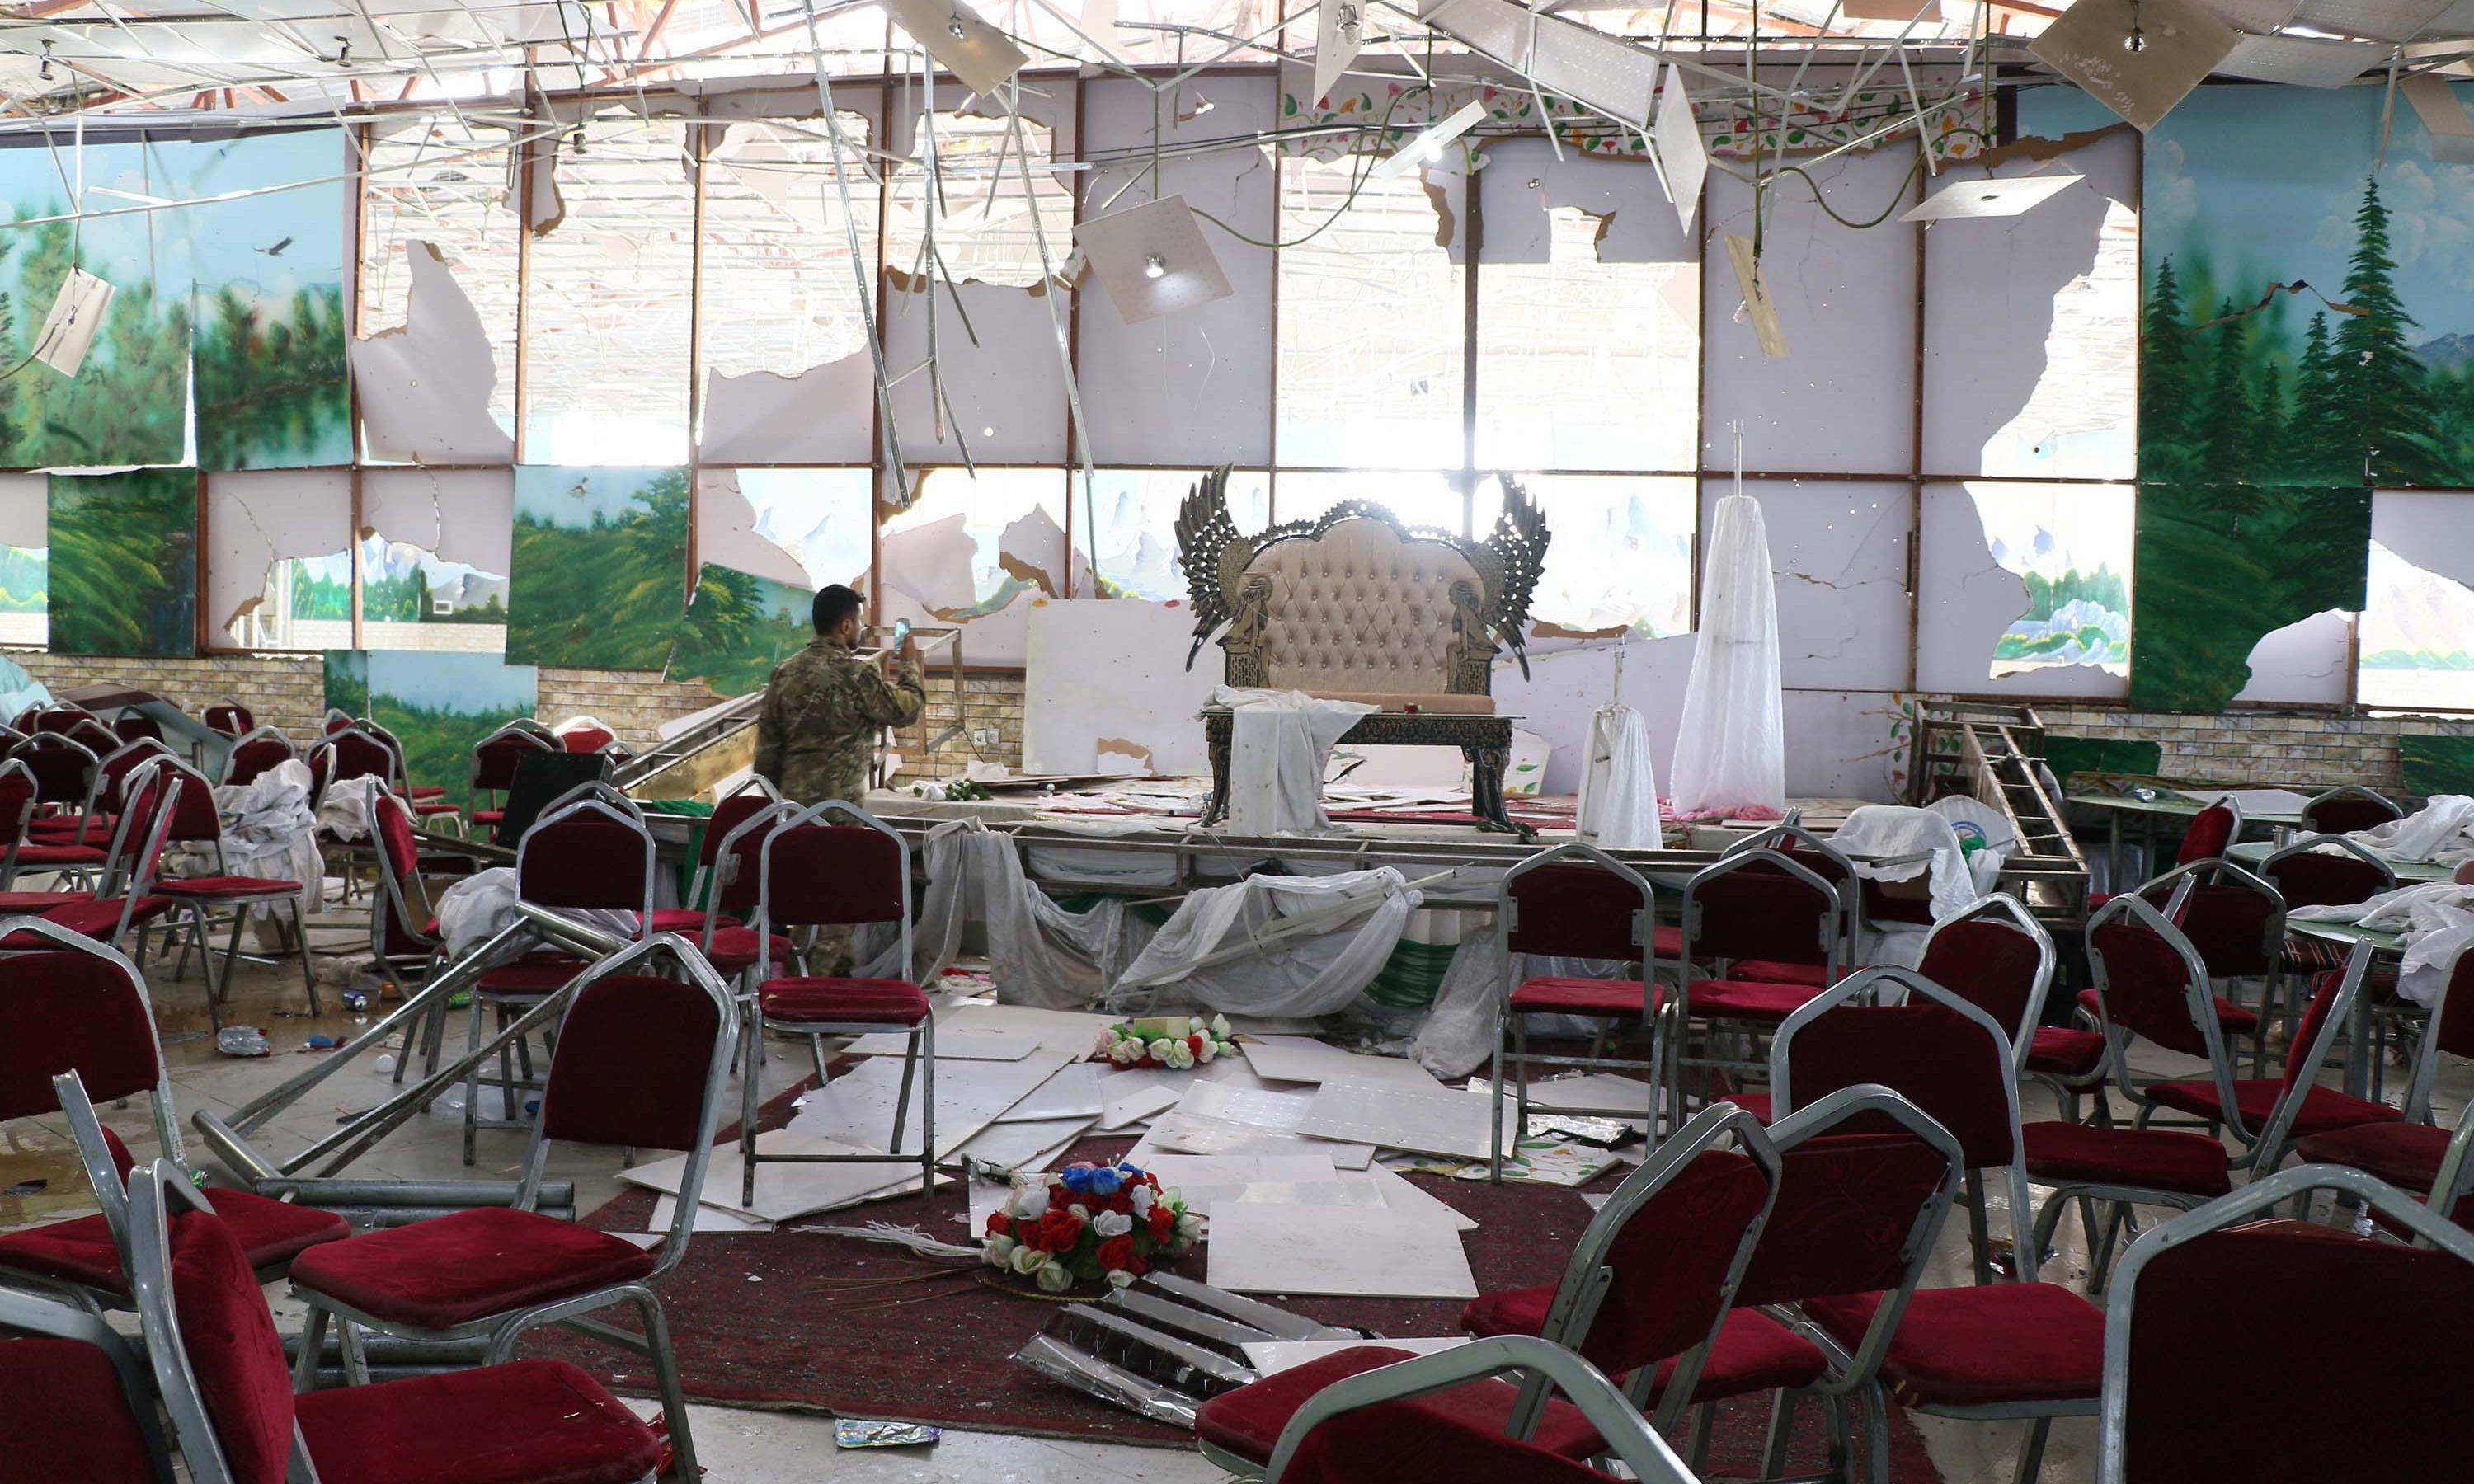 Islamic State claims responsibility for Kabul wedding hall blast